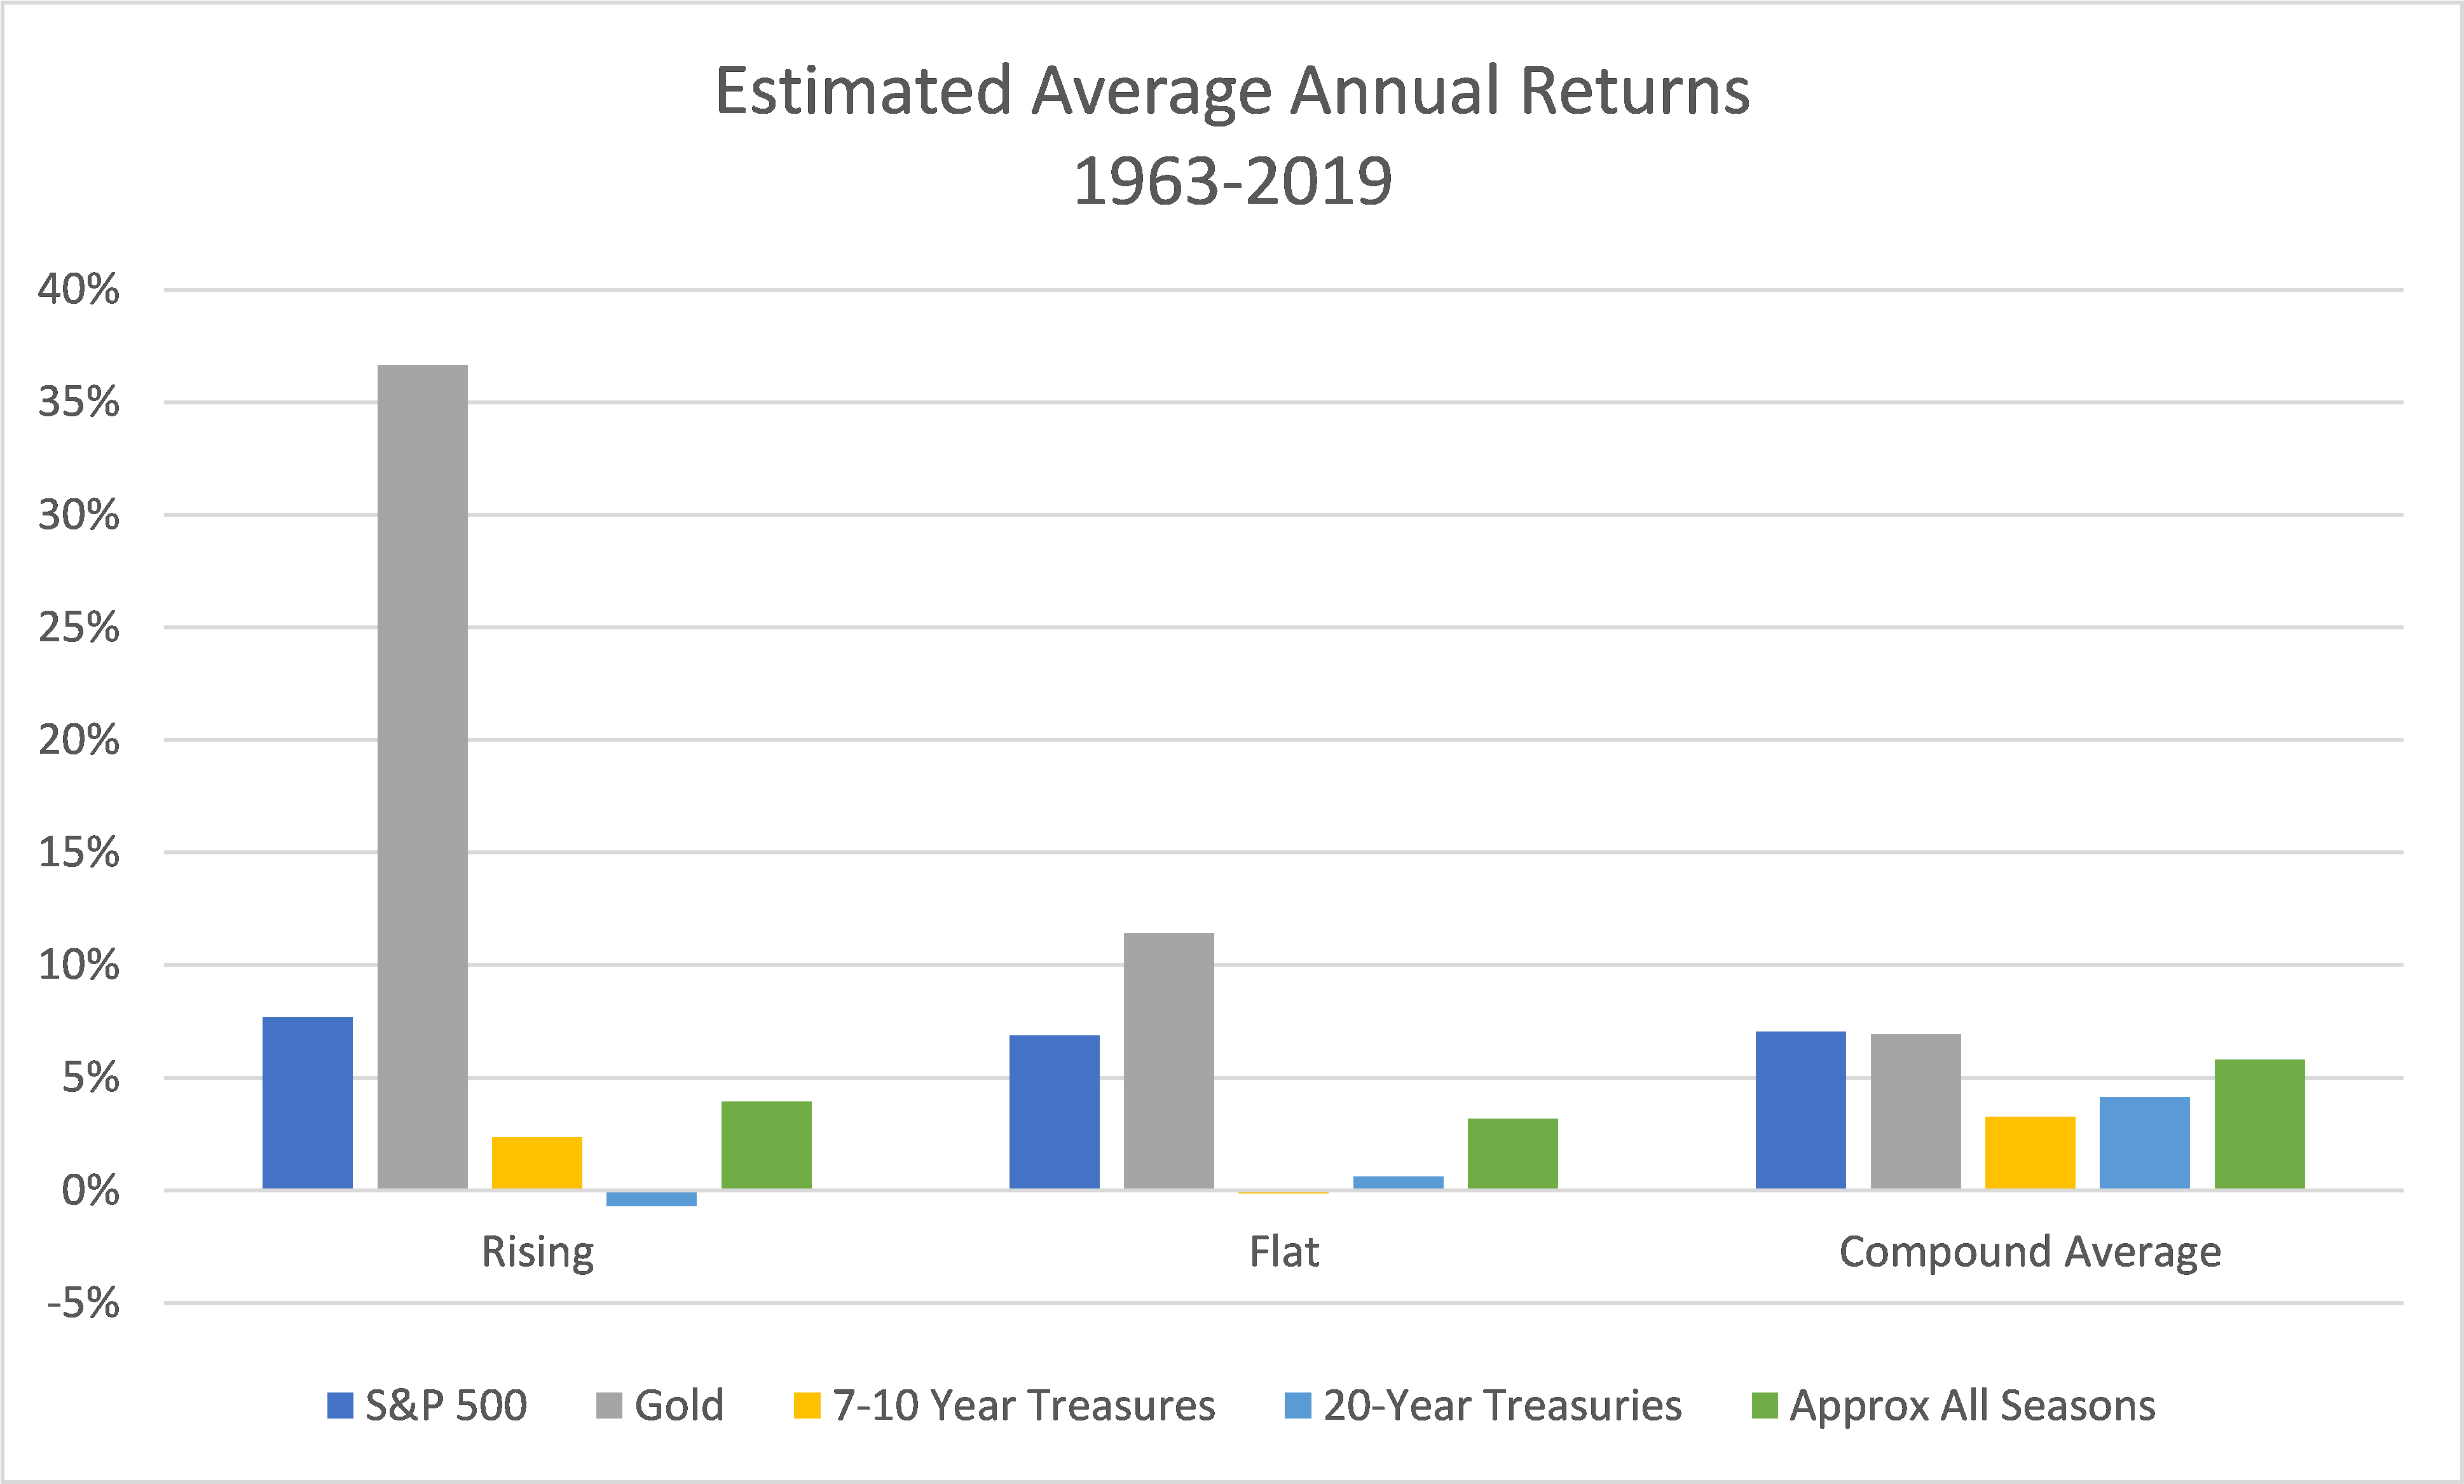 Average annual returns when interest rates were rising and flat